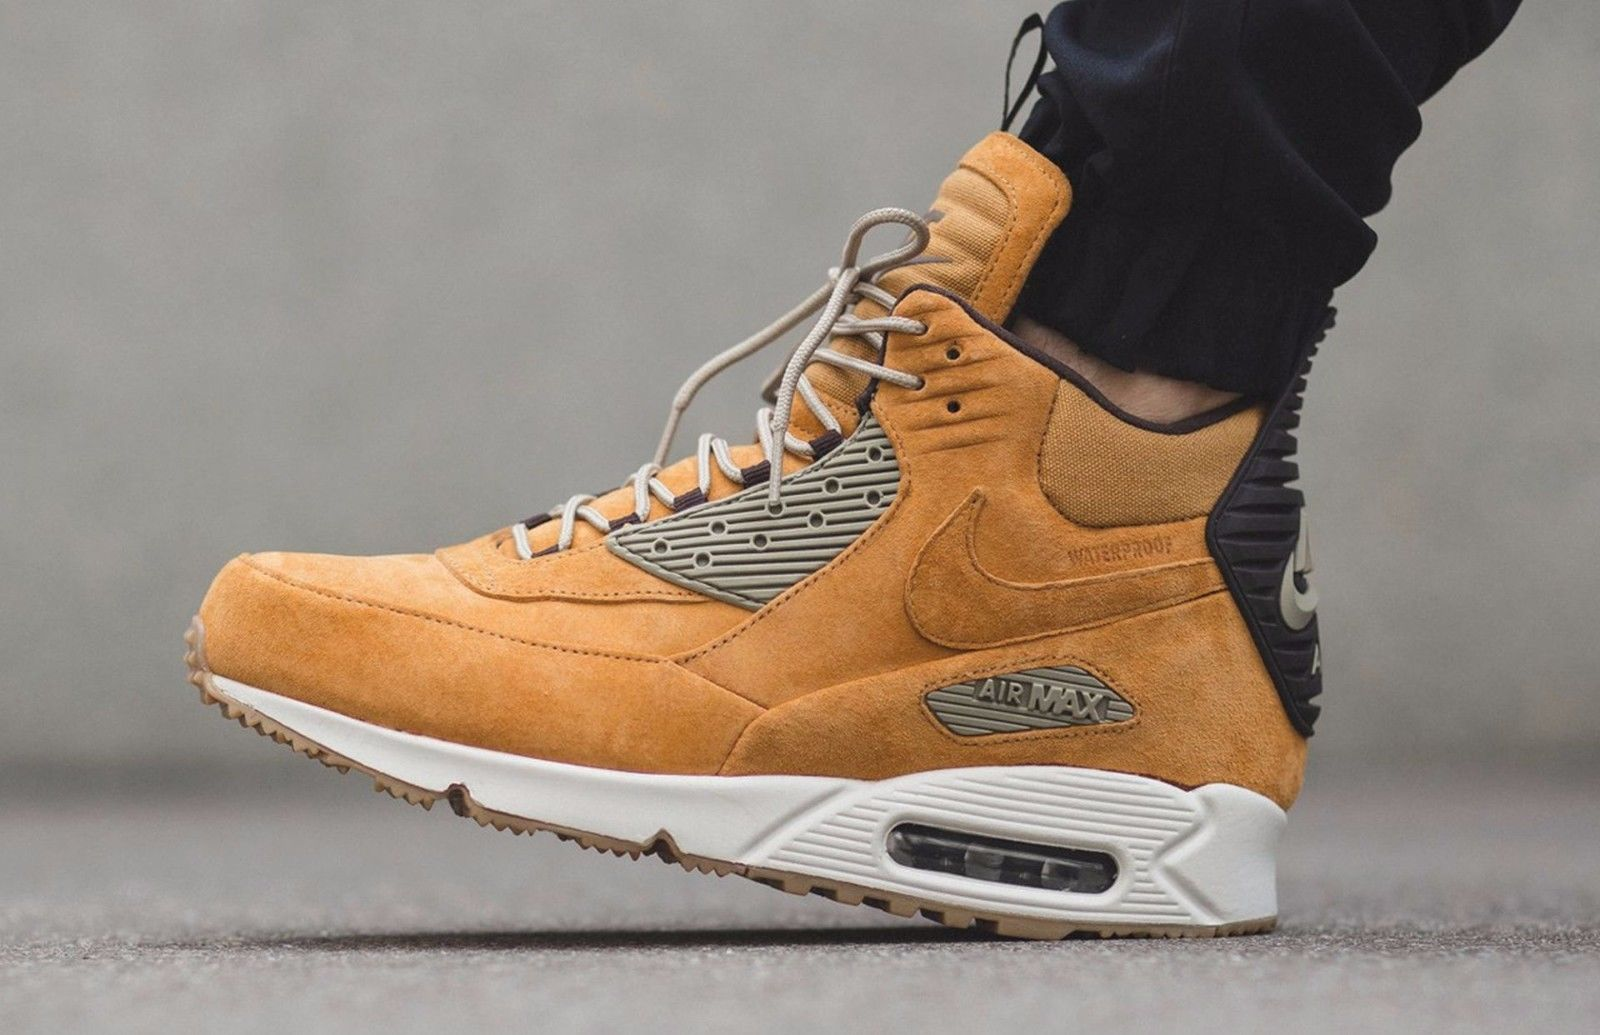 best service f3e45 9f6cc Nike Air Max 90 Sneakerboot Winter Waterproof - Wheat 684714-700 Mens Size  8.5